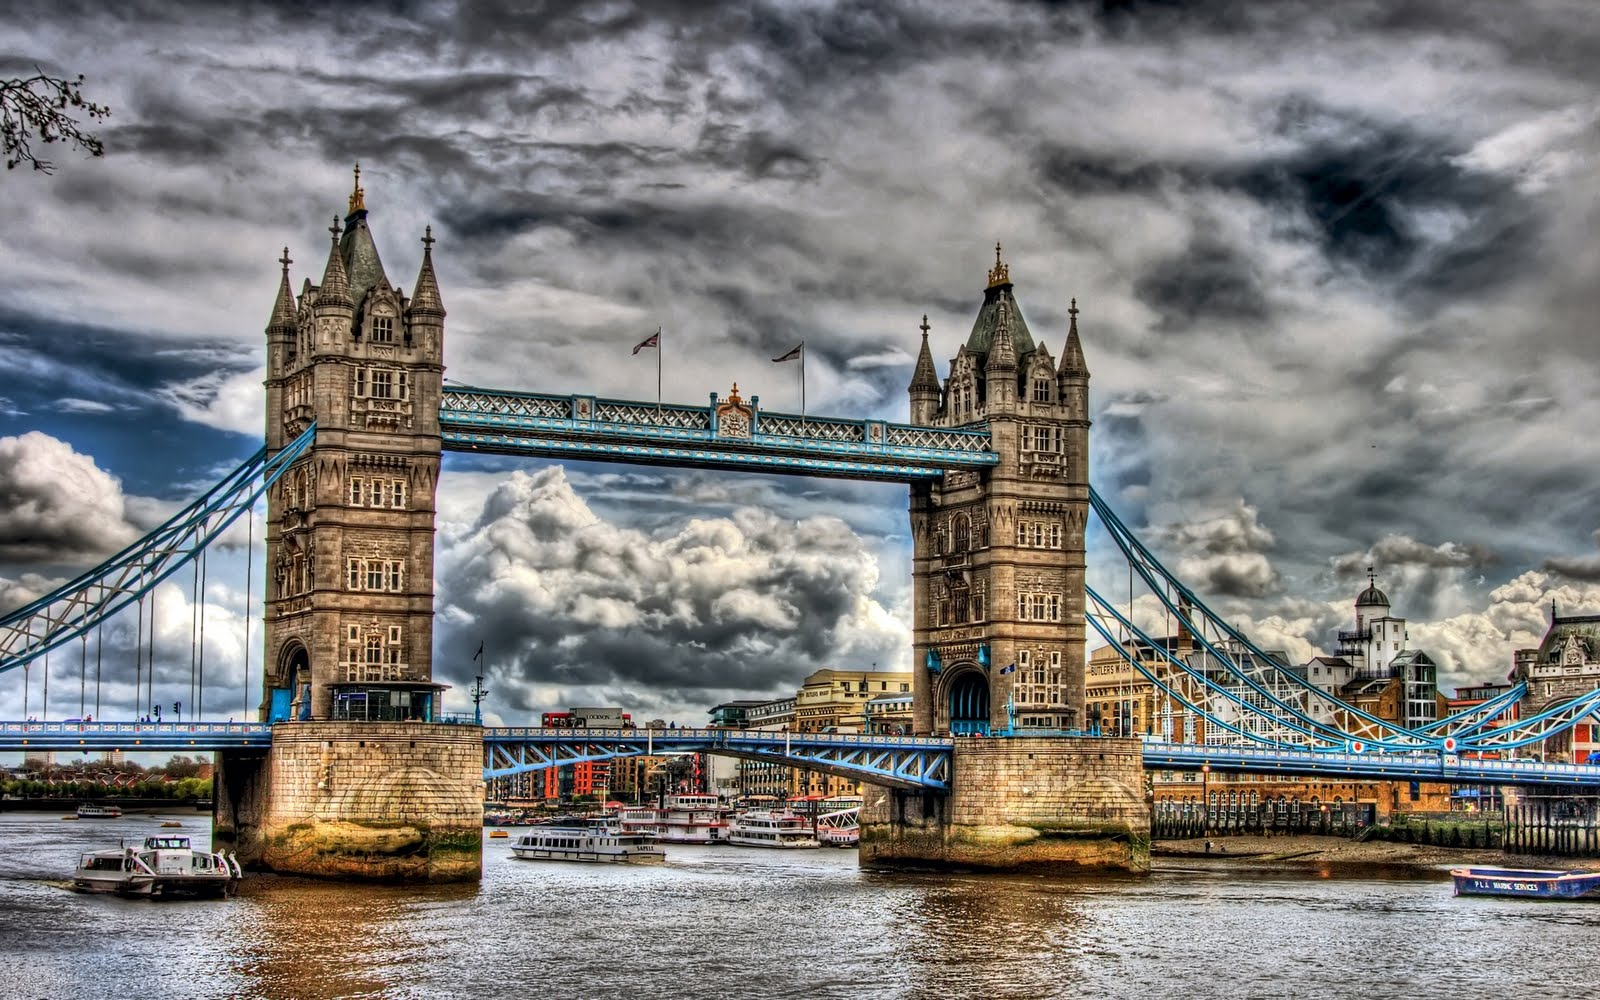 hdr tower bridge 1920x1200 wallpaper Don't shoot the Opera Tower! Photo: Ziv Mizrahi; Design: Ido Kenan.